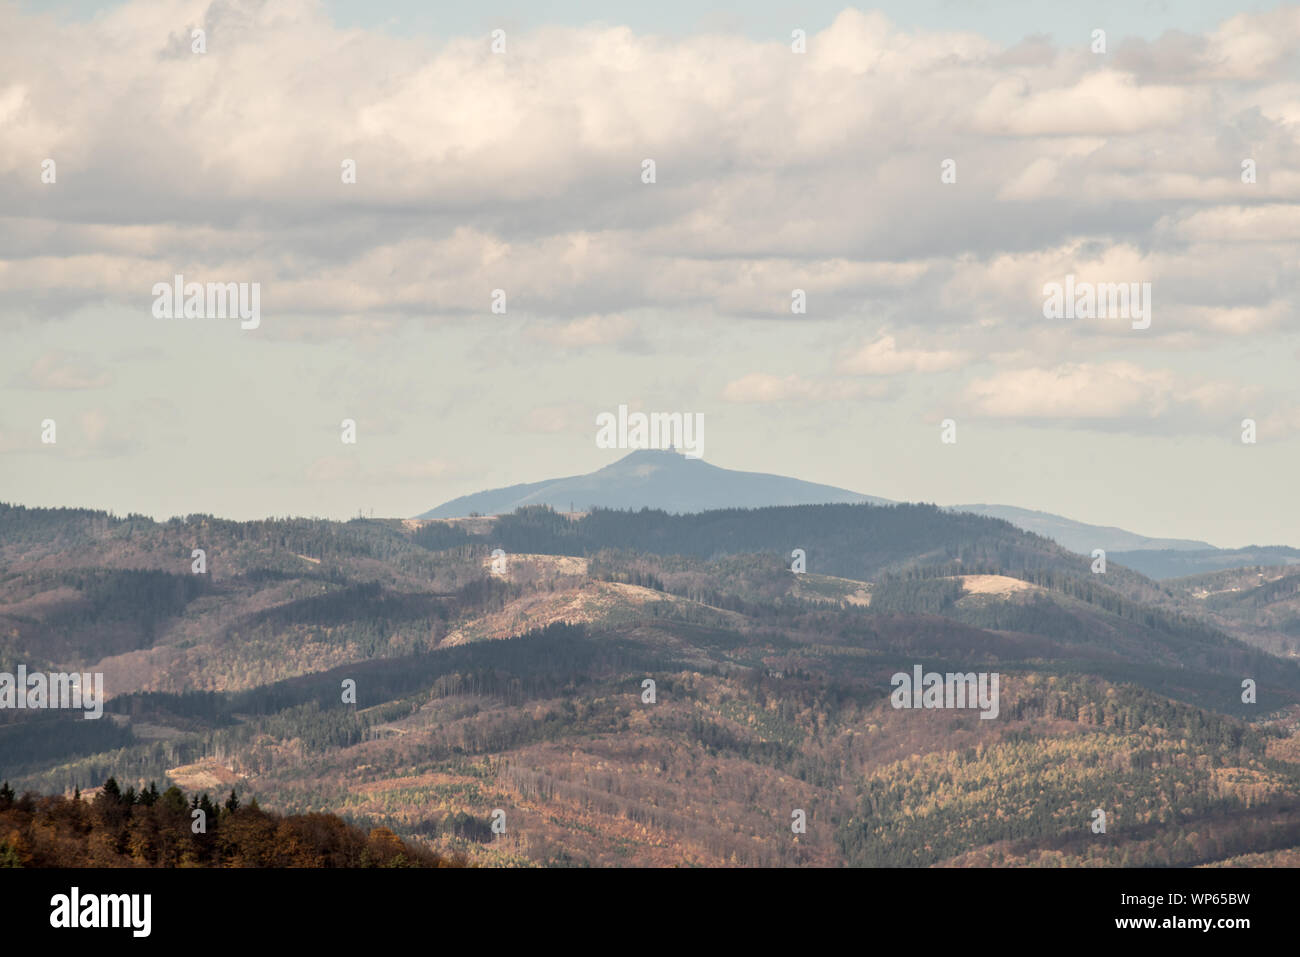 view tp Lysa hora hill in Moravskoslezske Beskydy mountains with Javorniky mountain range with Luby hill on the front from Kecka hill in Sulovske skal Stock Photo